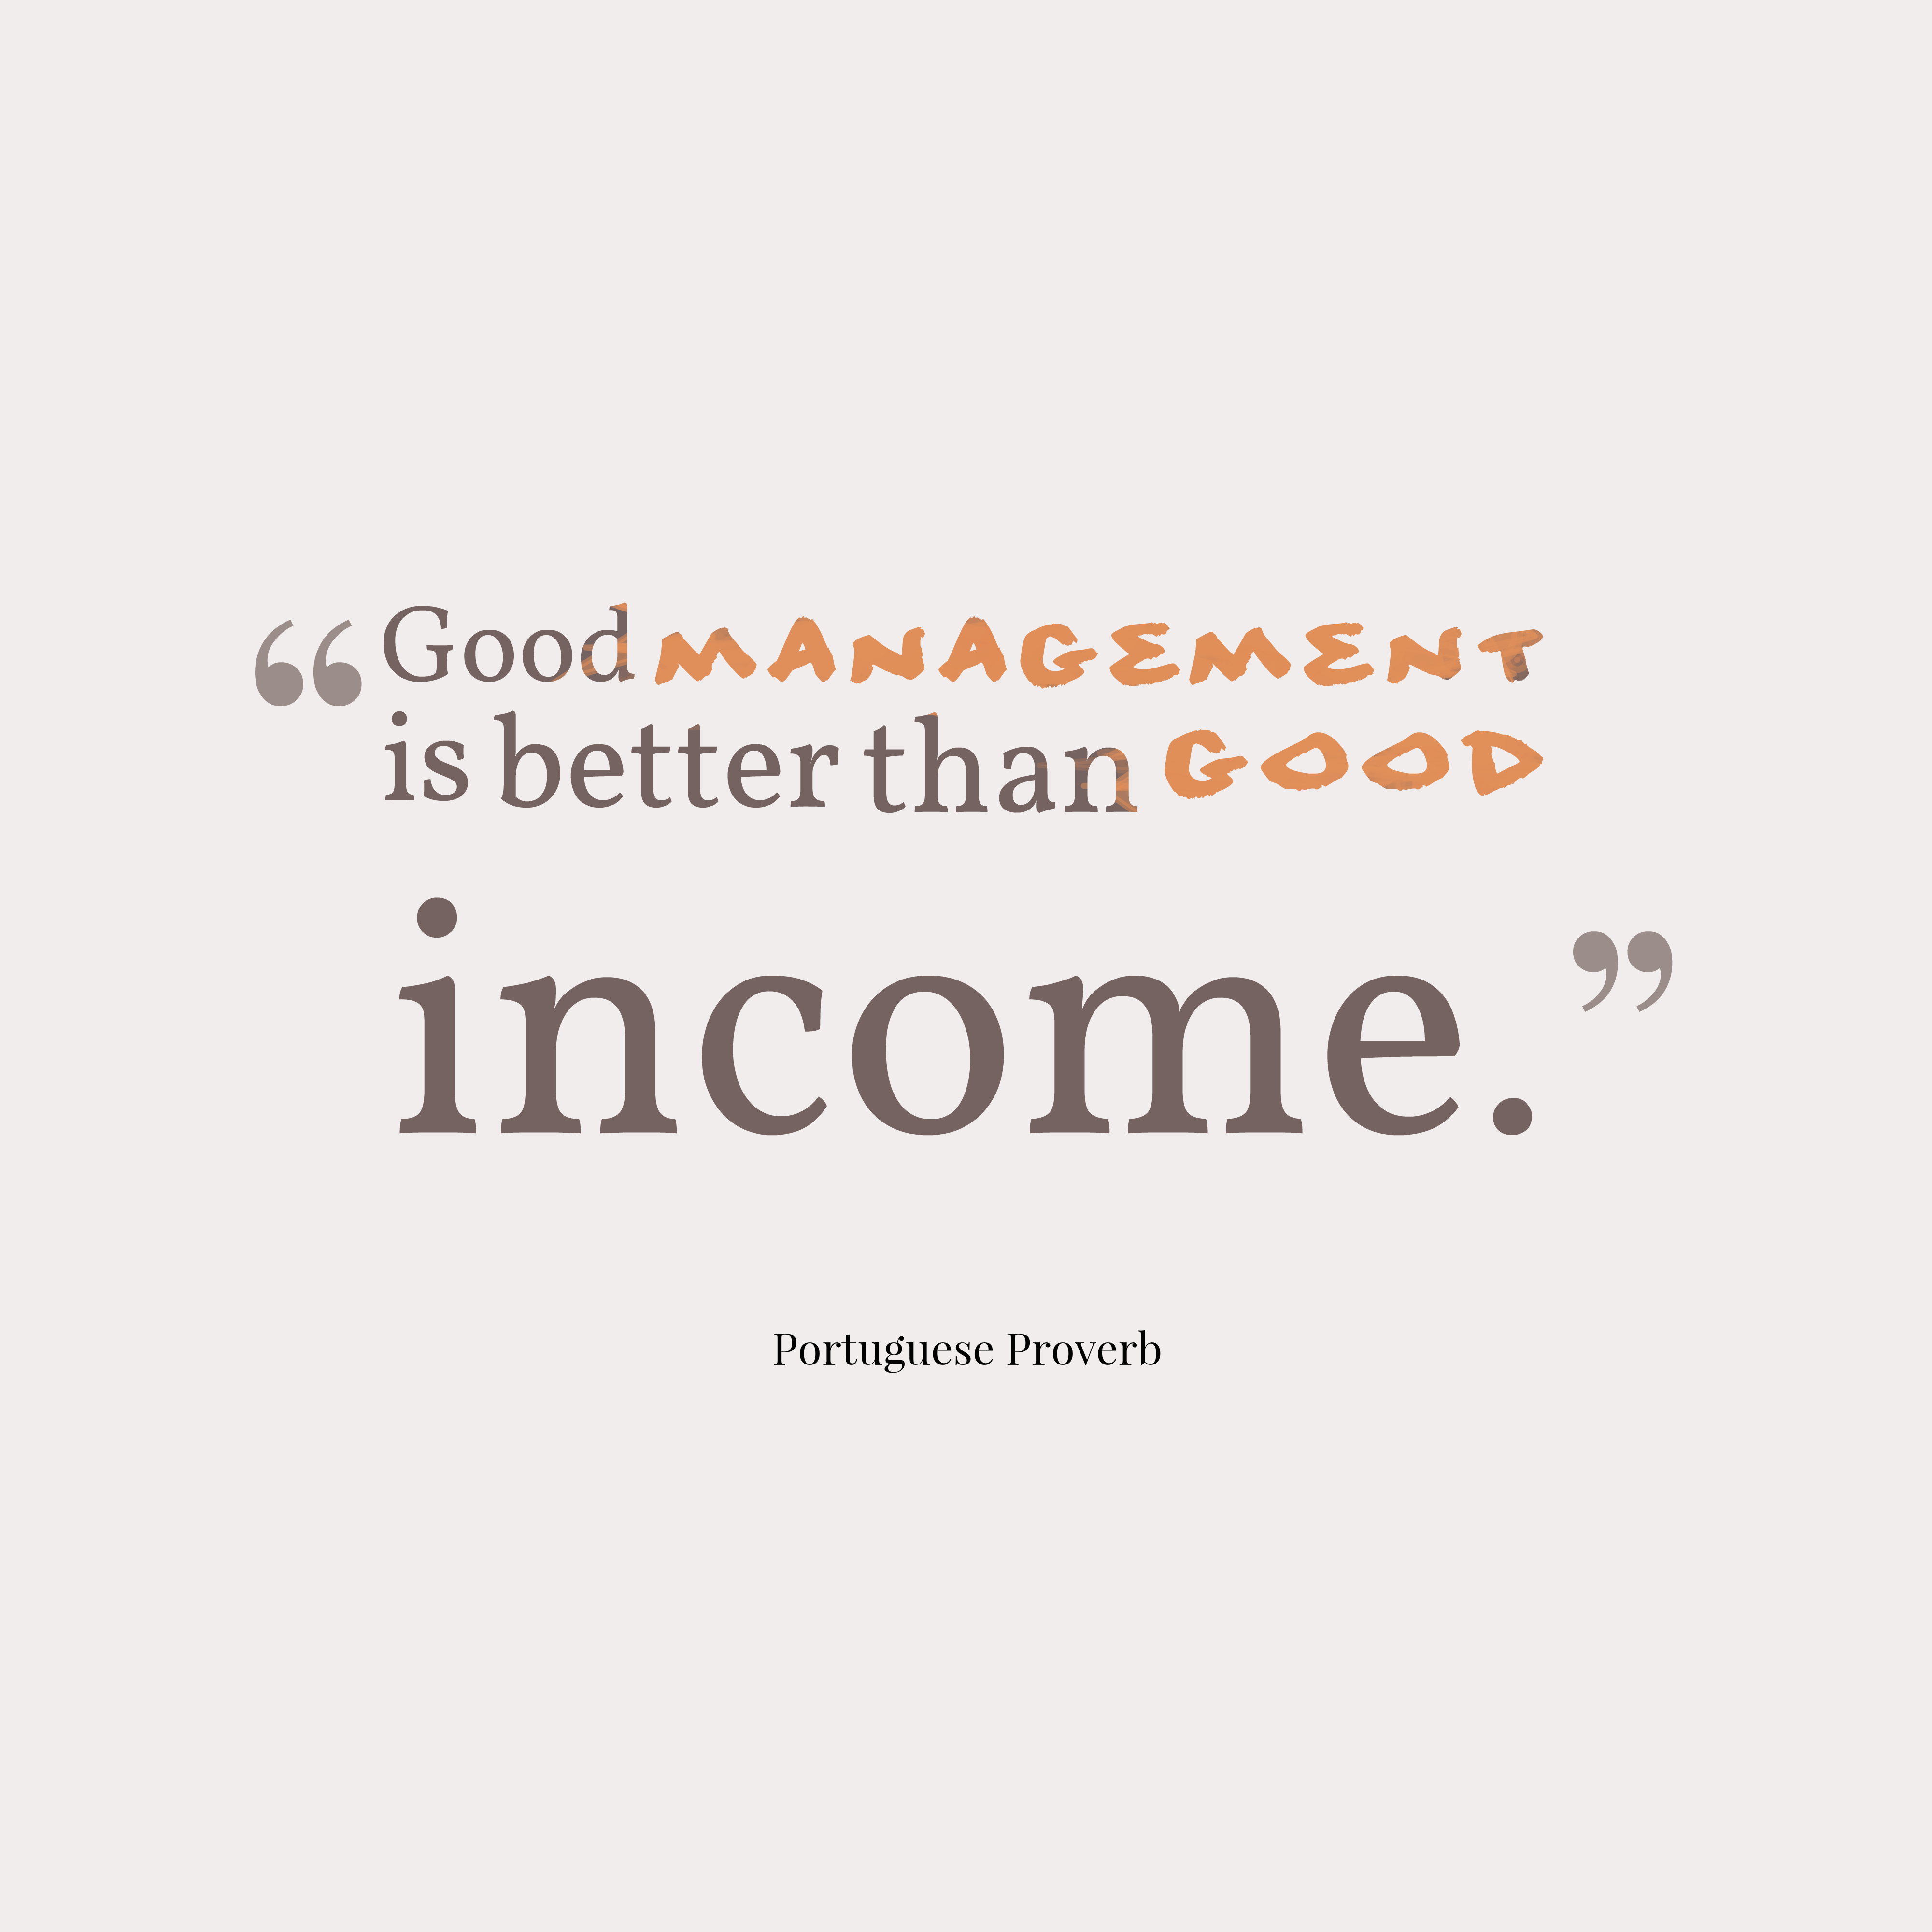 Quotes image of Good management is better than good income.